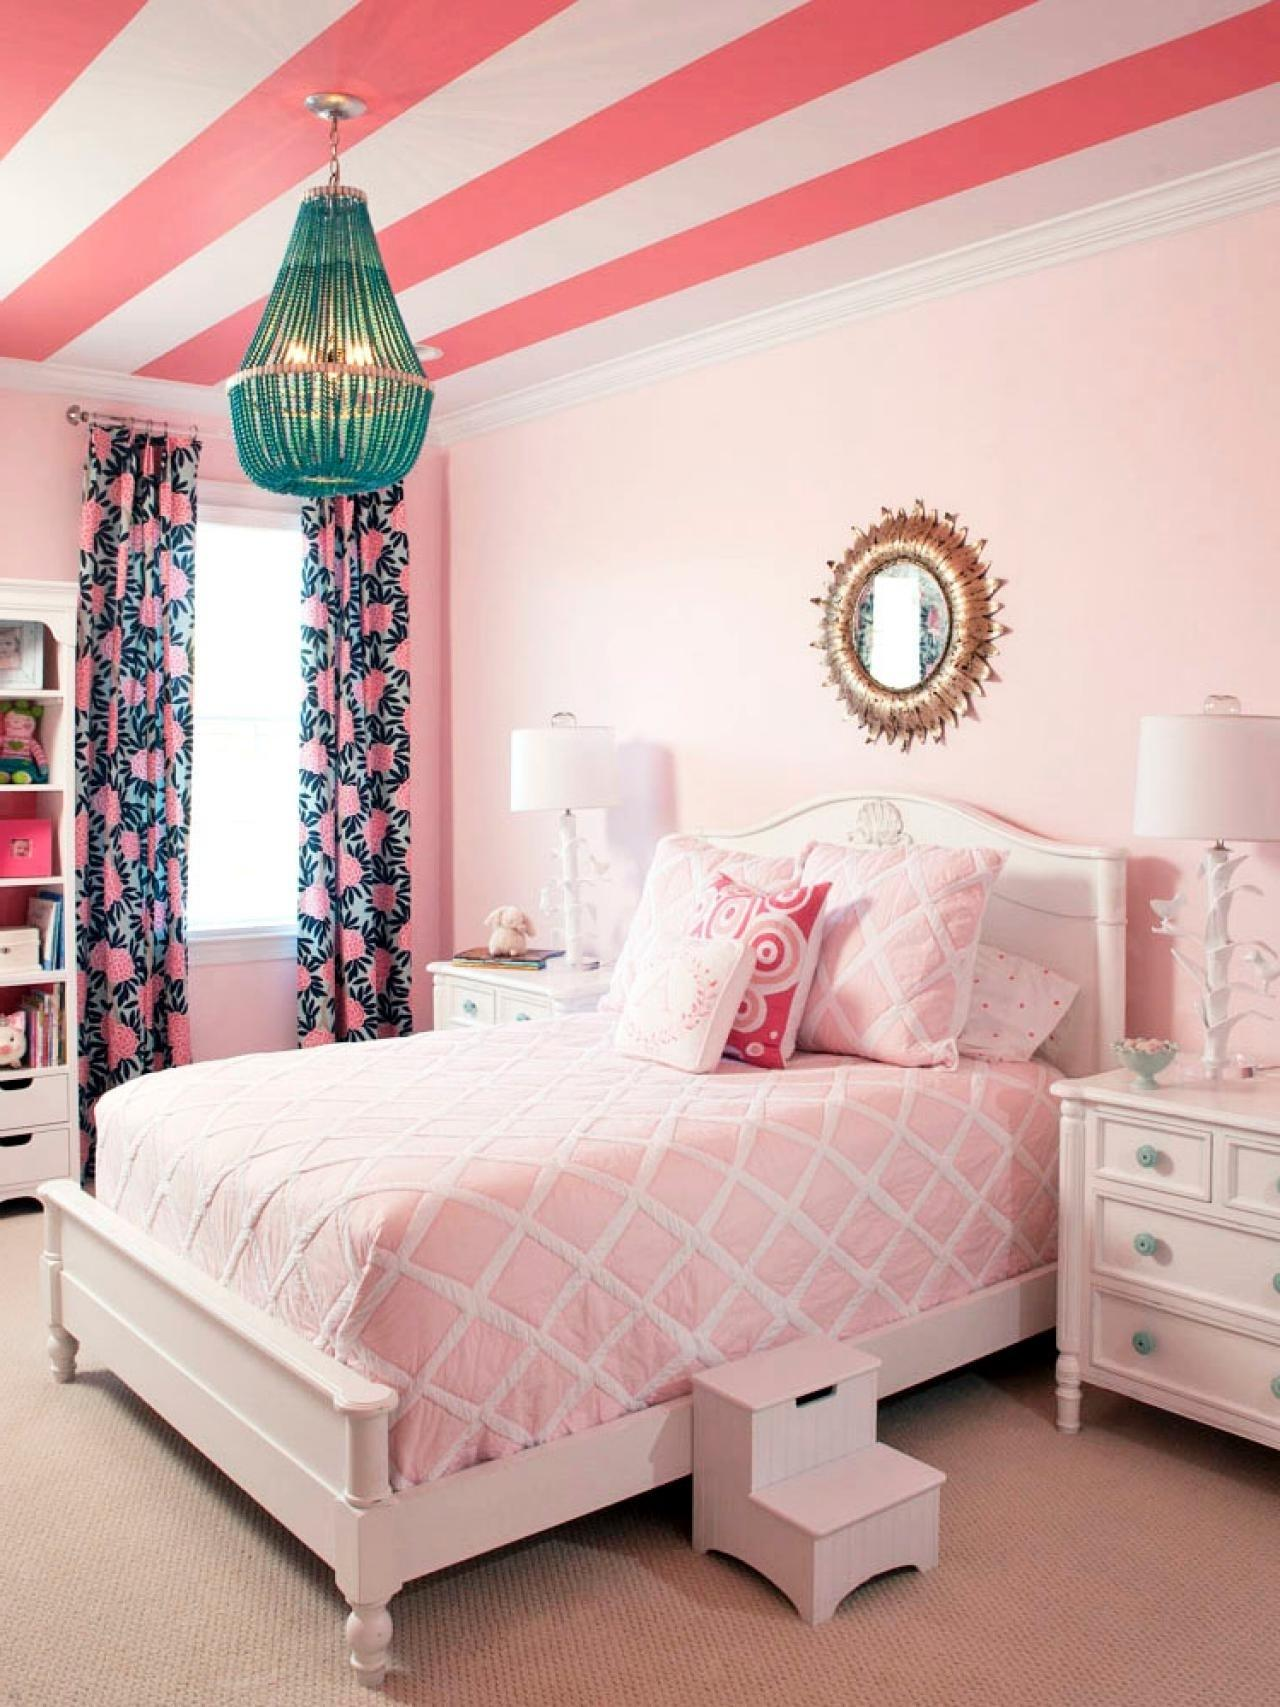 Teens Room Decorating Ideas Cute White Pink Girly Bedroom Decoratorist 49819